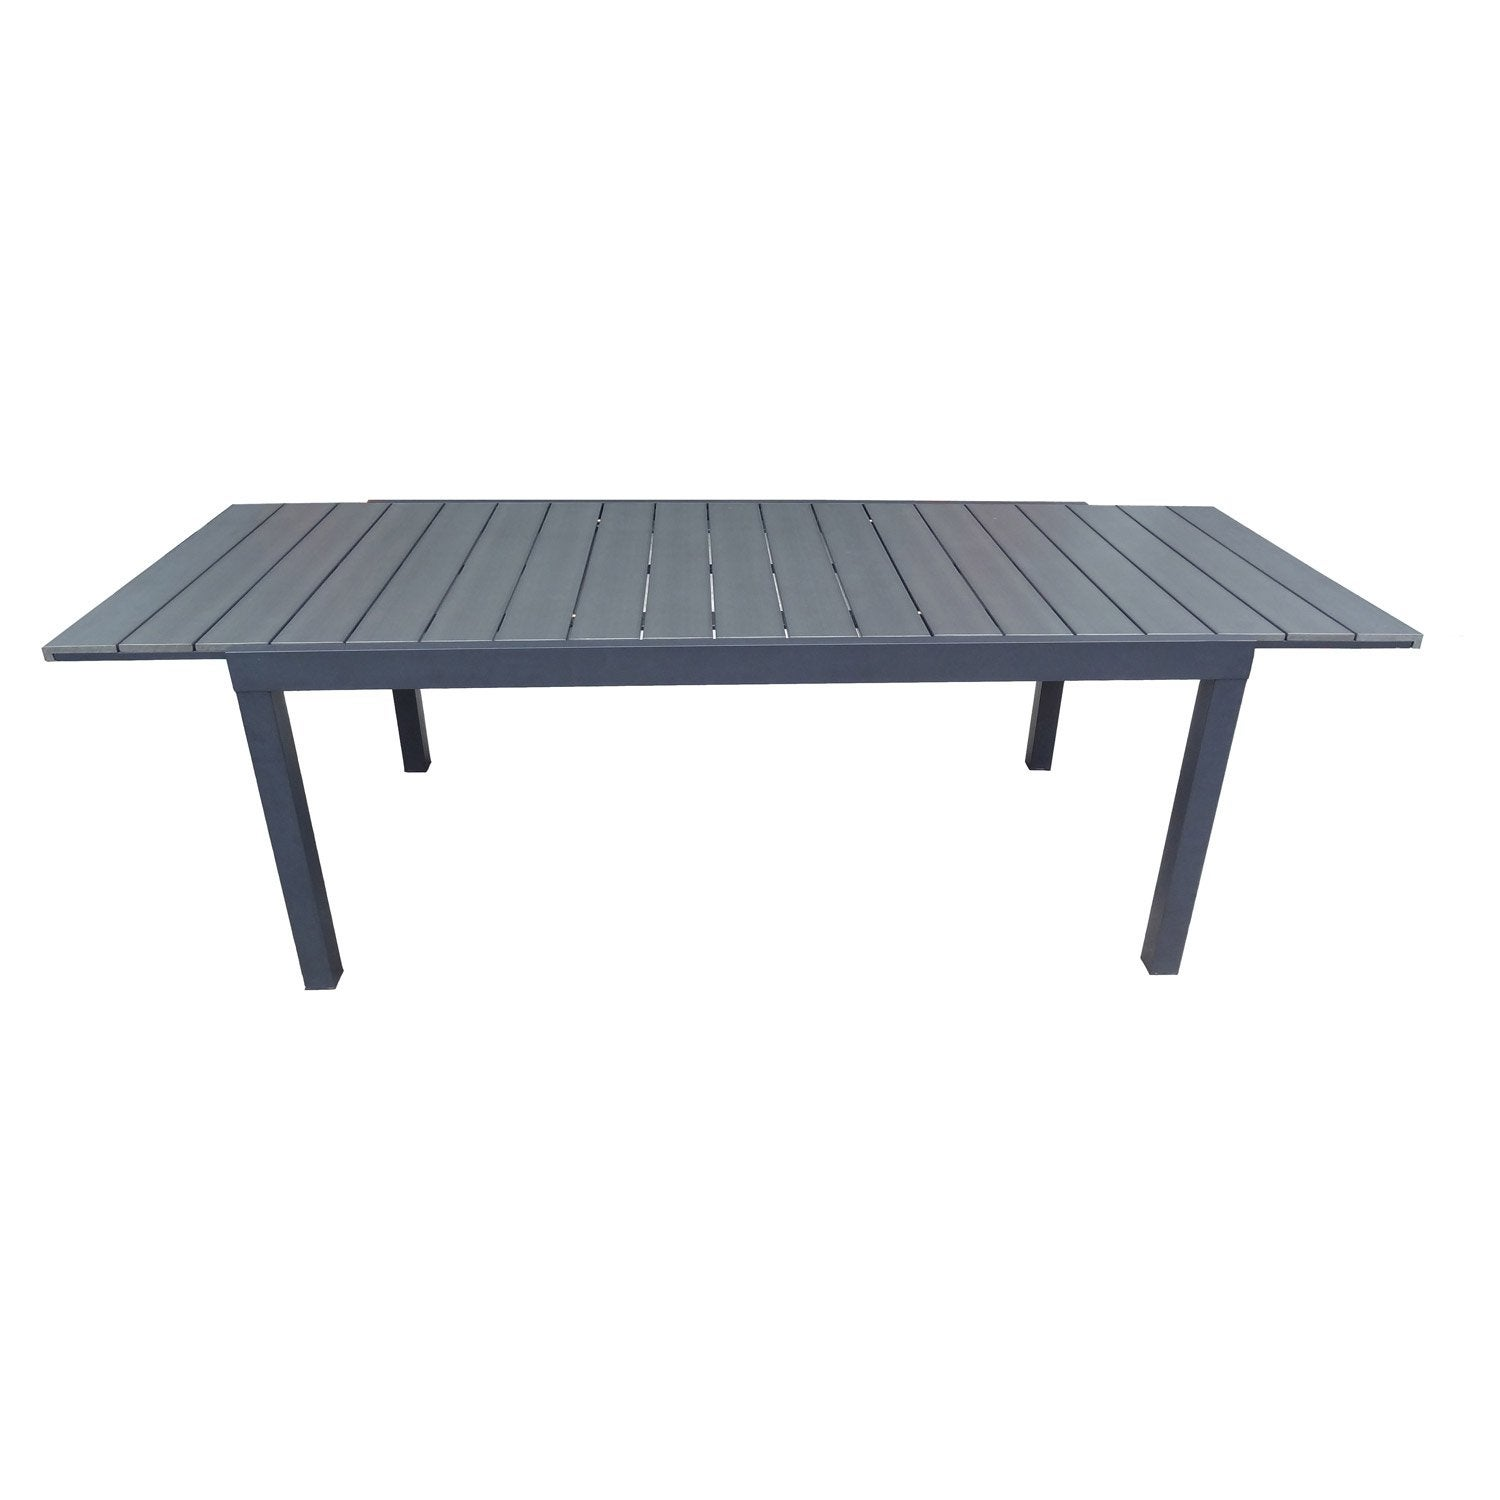 Table de jardin naterial pratt rectangulaire gris leroy merlin - Table basse en aluminium ...